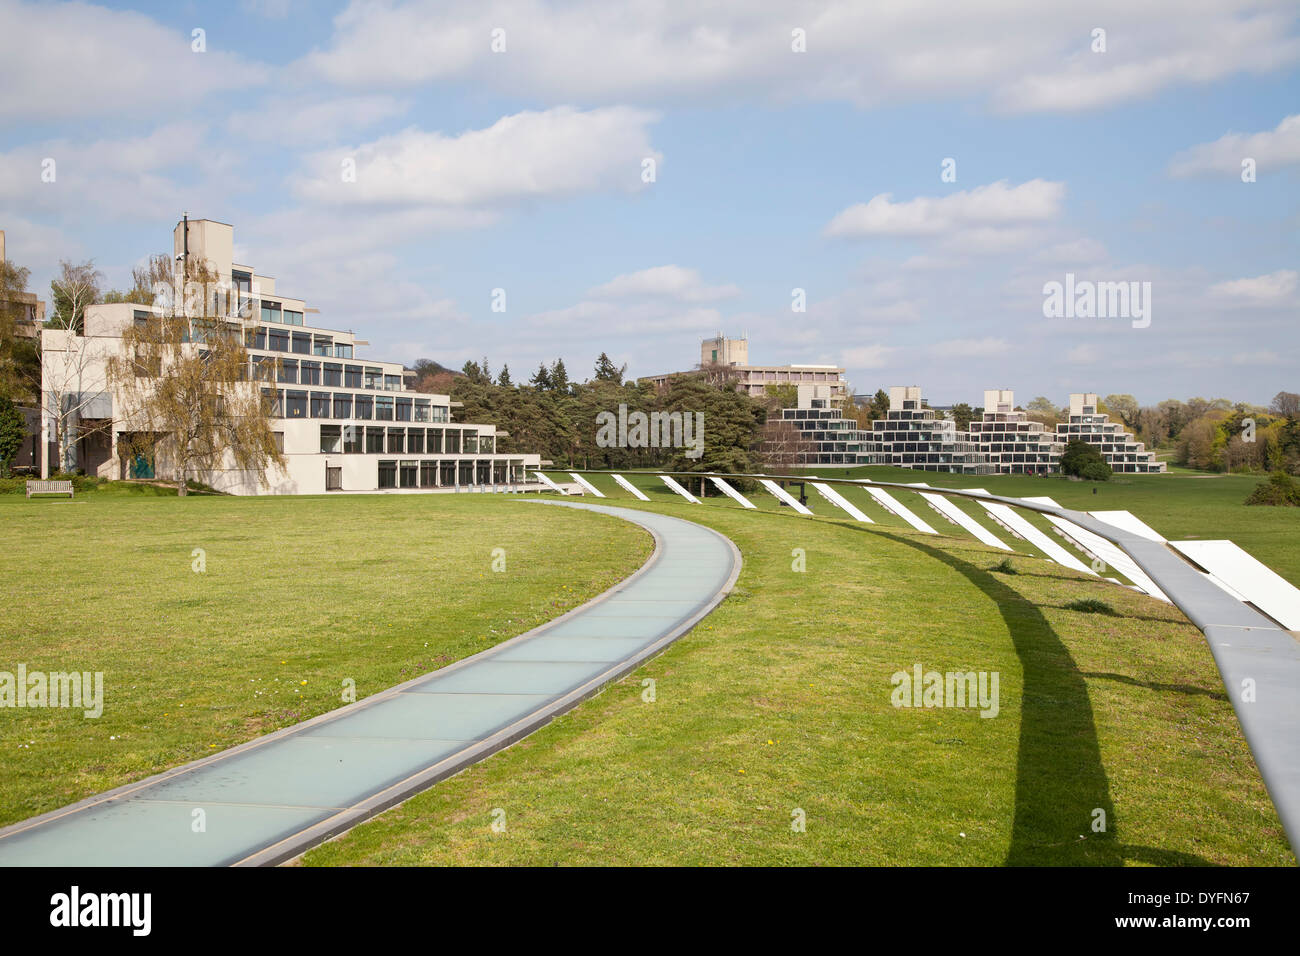 University of east Anglia buildings - Stock Image